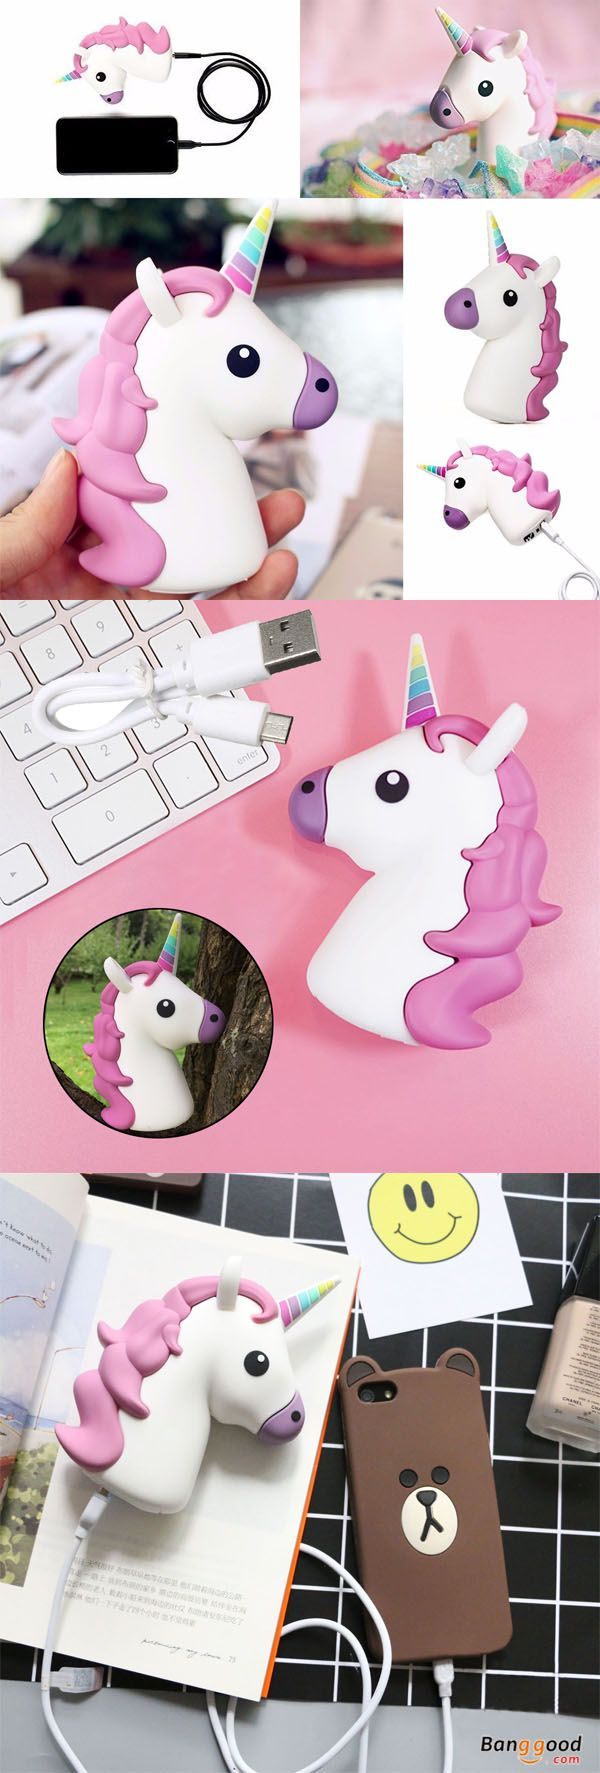 US$14.99 + Free shipping. Super cute appearance that looks good and easy to carry. It can be anywhere at any time on your phone, digital camera,Pad, PDP, MP3, MP4 etc. that has a USB input. Creative unicorn charger, Portable Backup Battery, Power Bank.